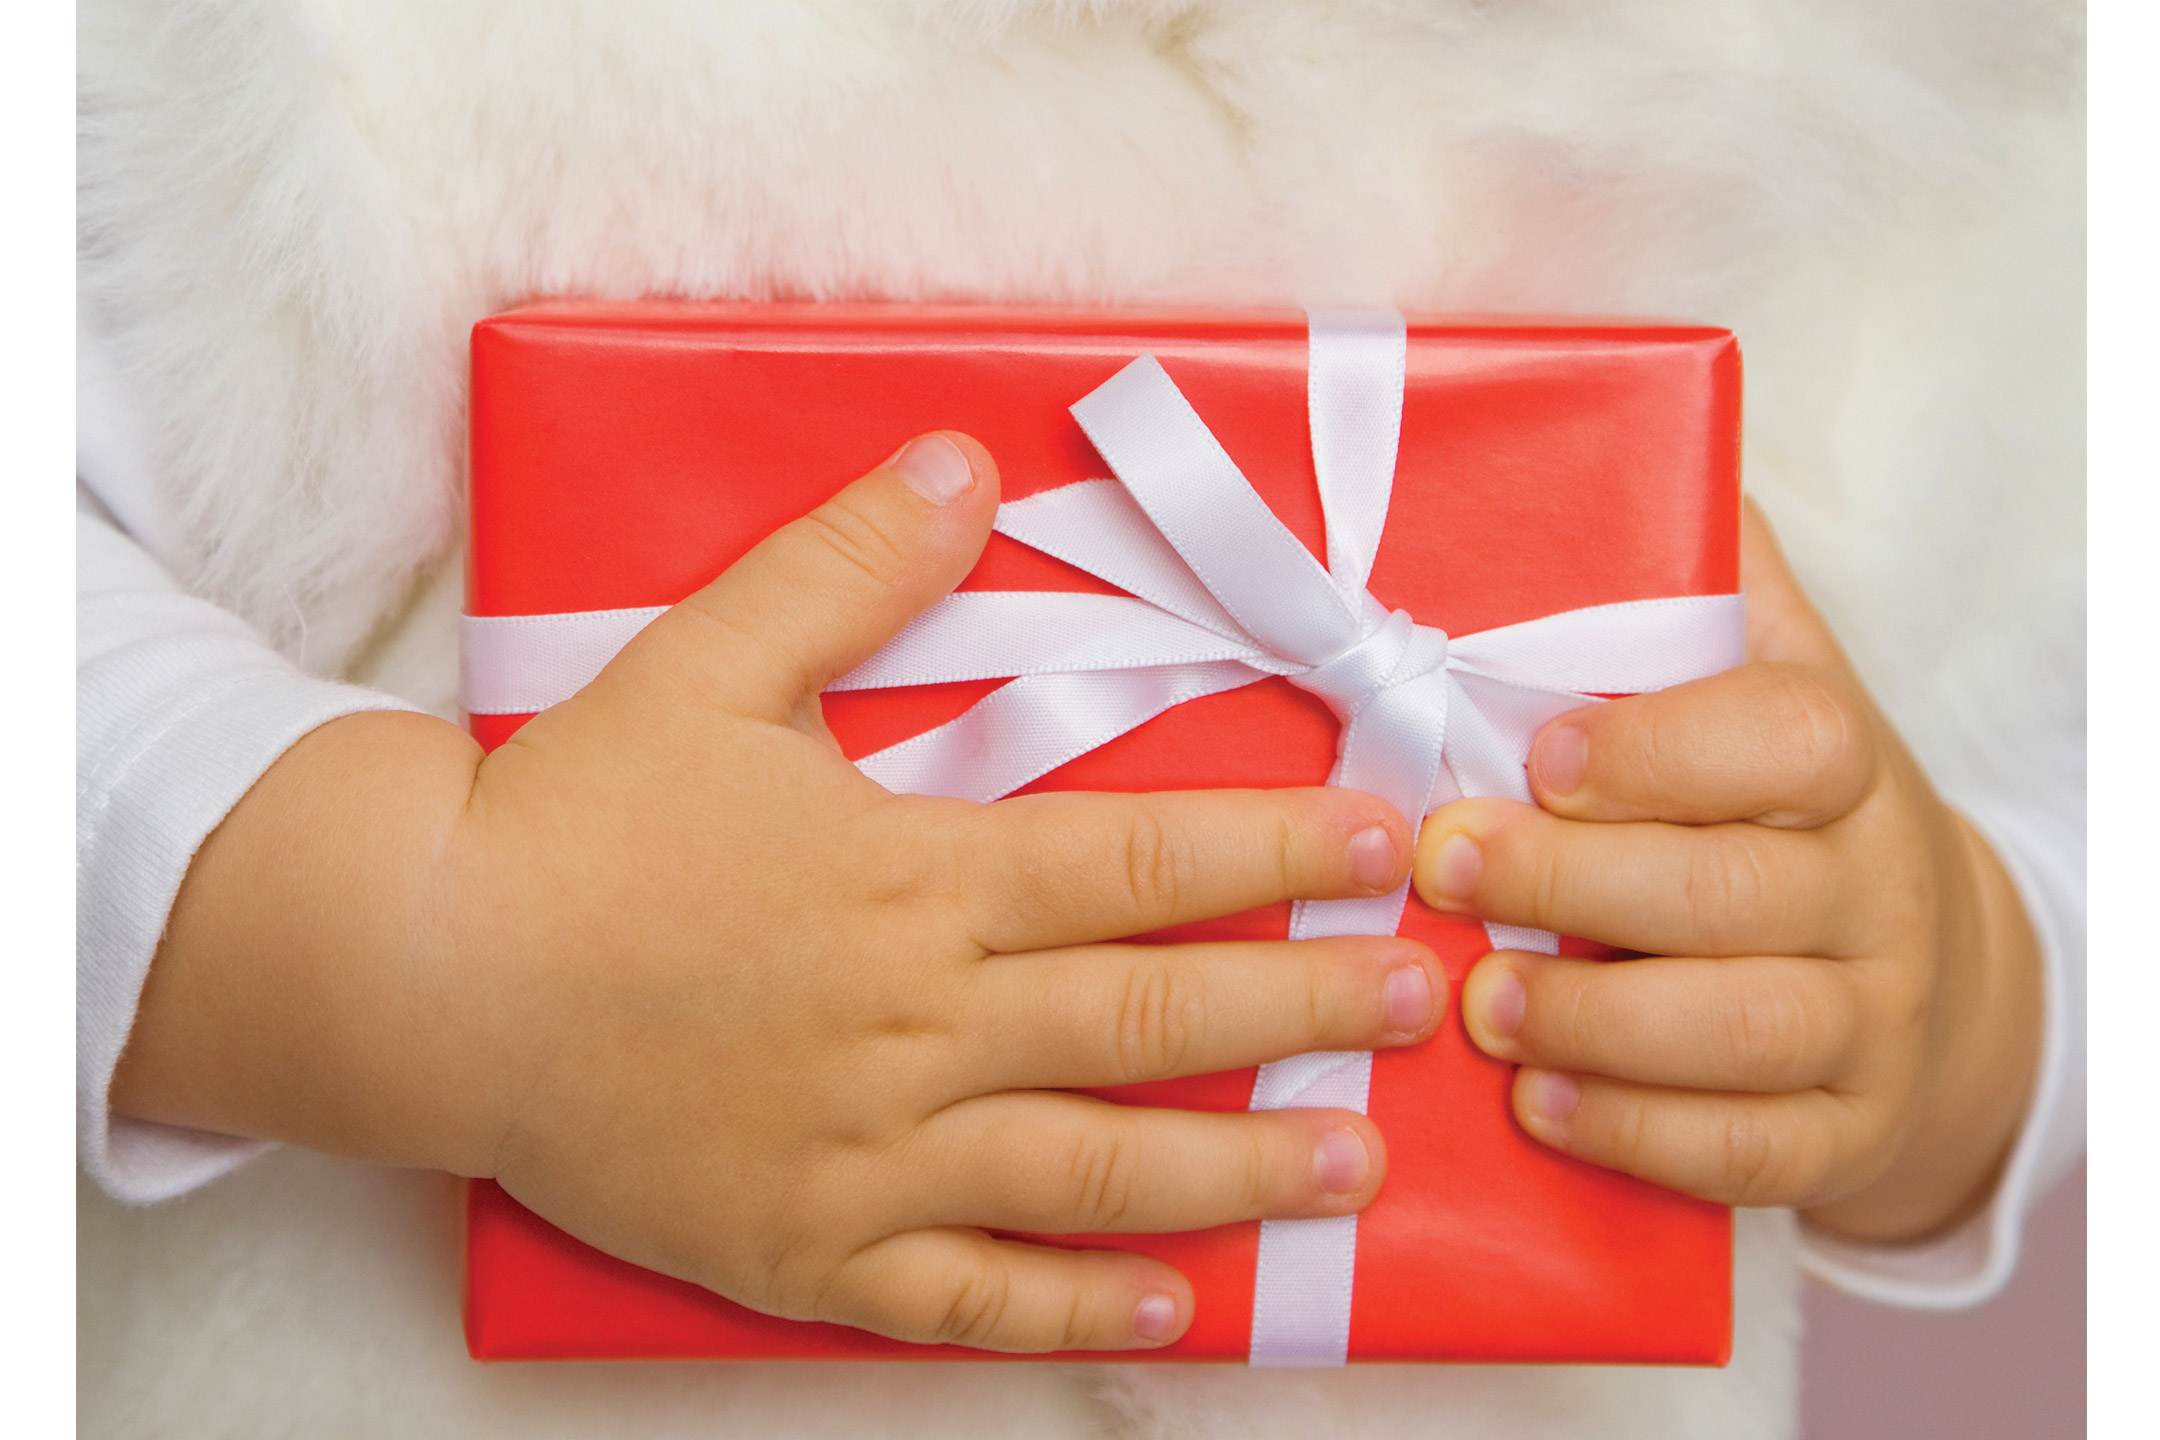 red-gift-clutched-by-child2160